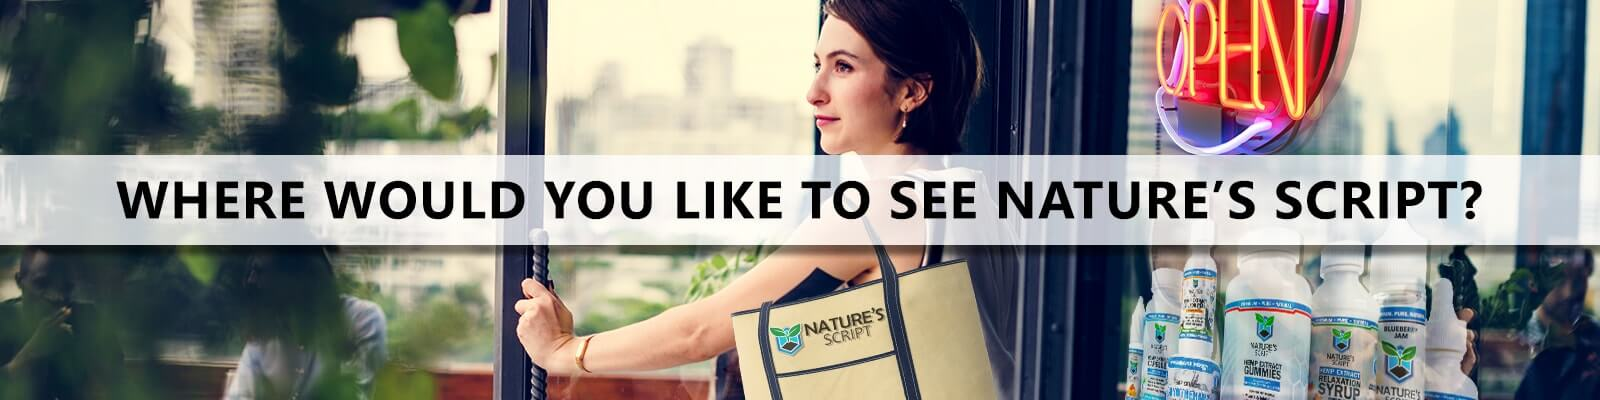 Nominate a CBD store near me to carry Nature's Script